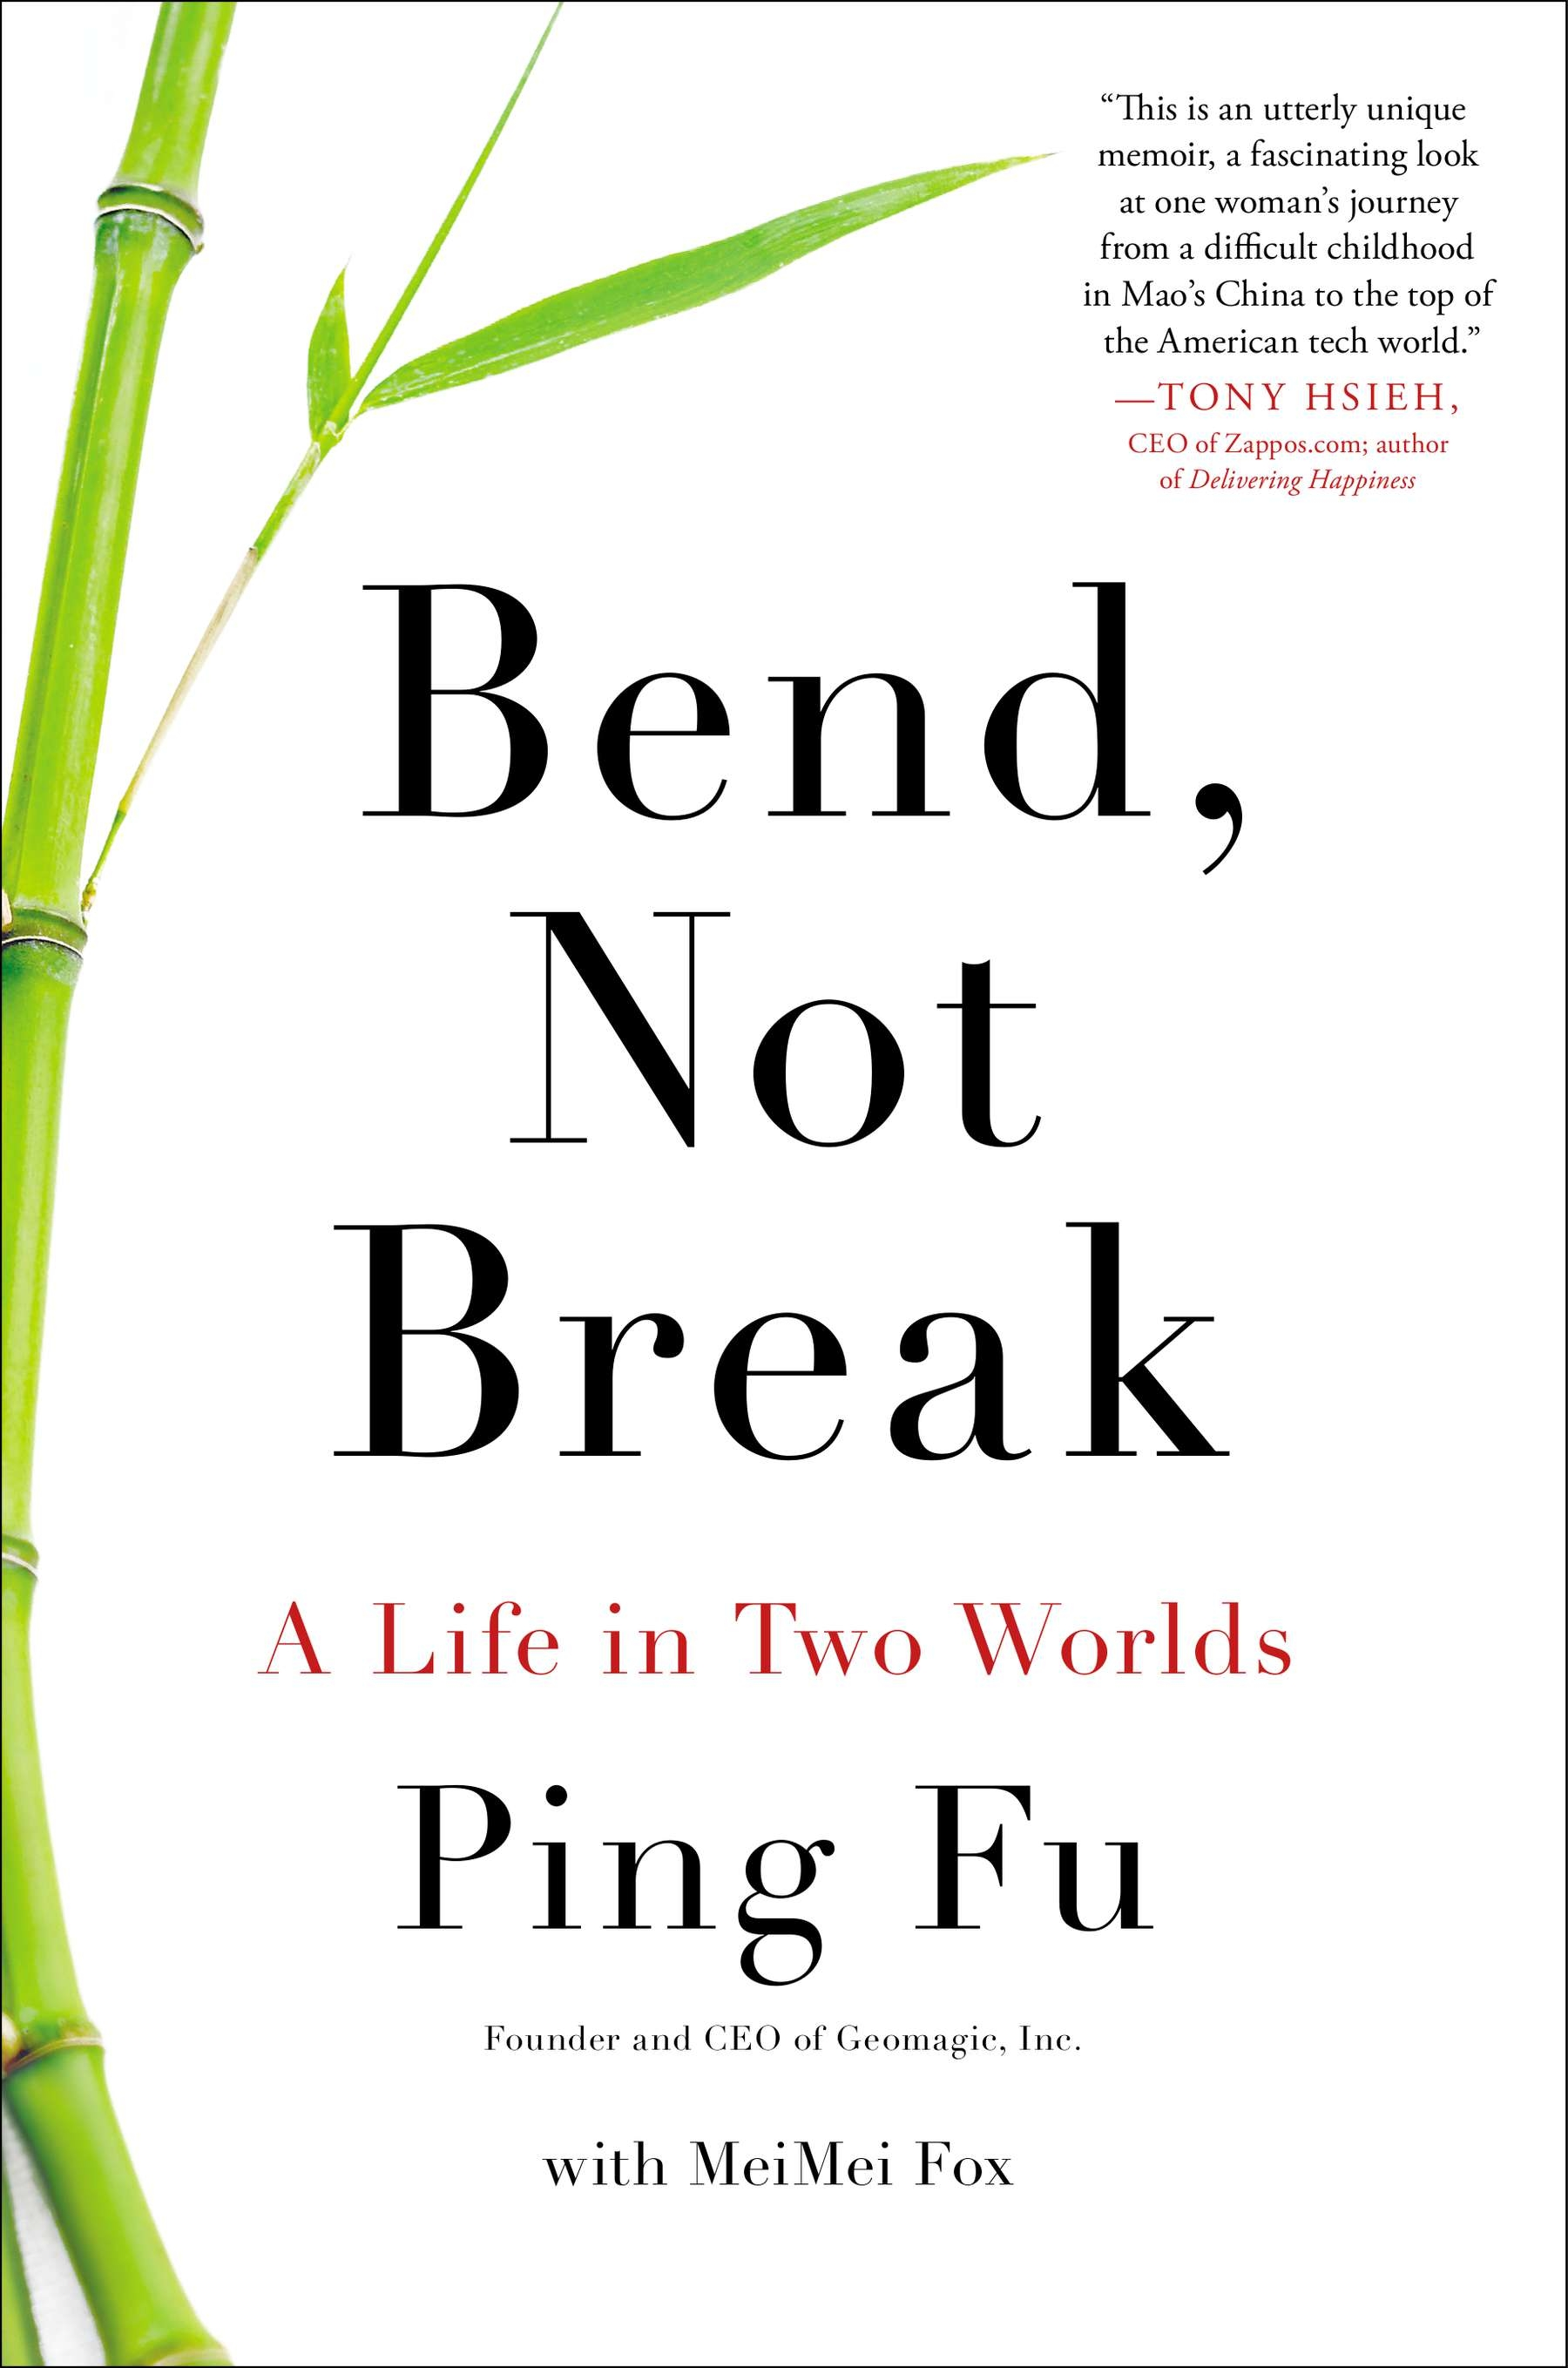 Amazon.com: Customer reviews: Bend. Not Break: A Life in ...